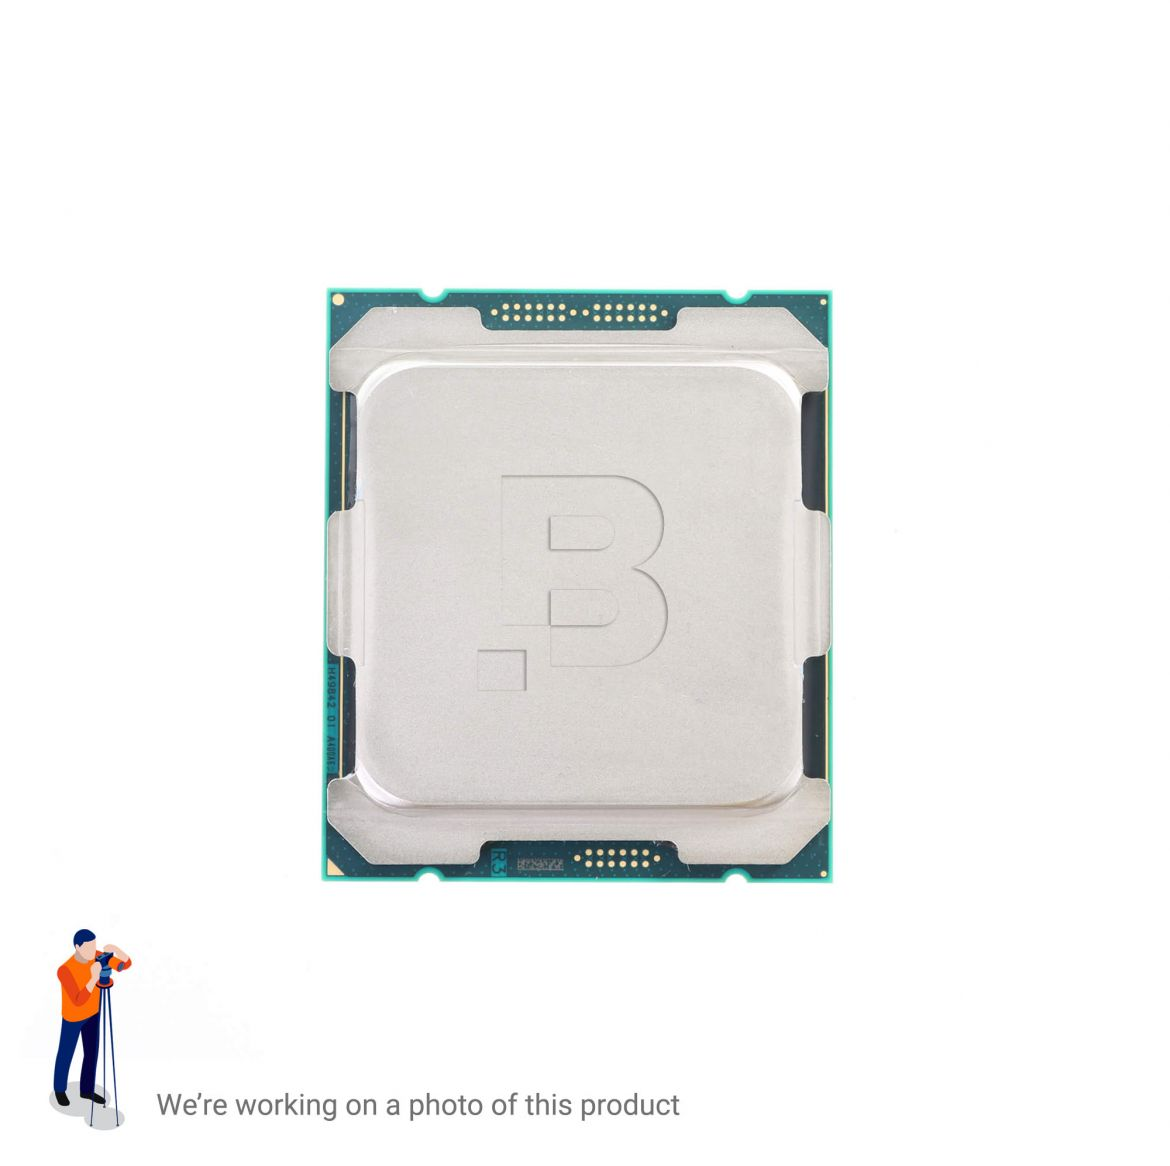 Intel Xeon E5 4669 V4 Cpu Processor 22 Core 2 20ghz 55mb L3 Cache 135w Sr2sg Parts Components